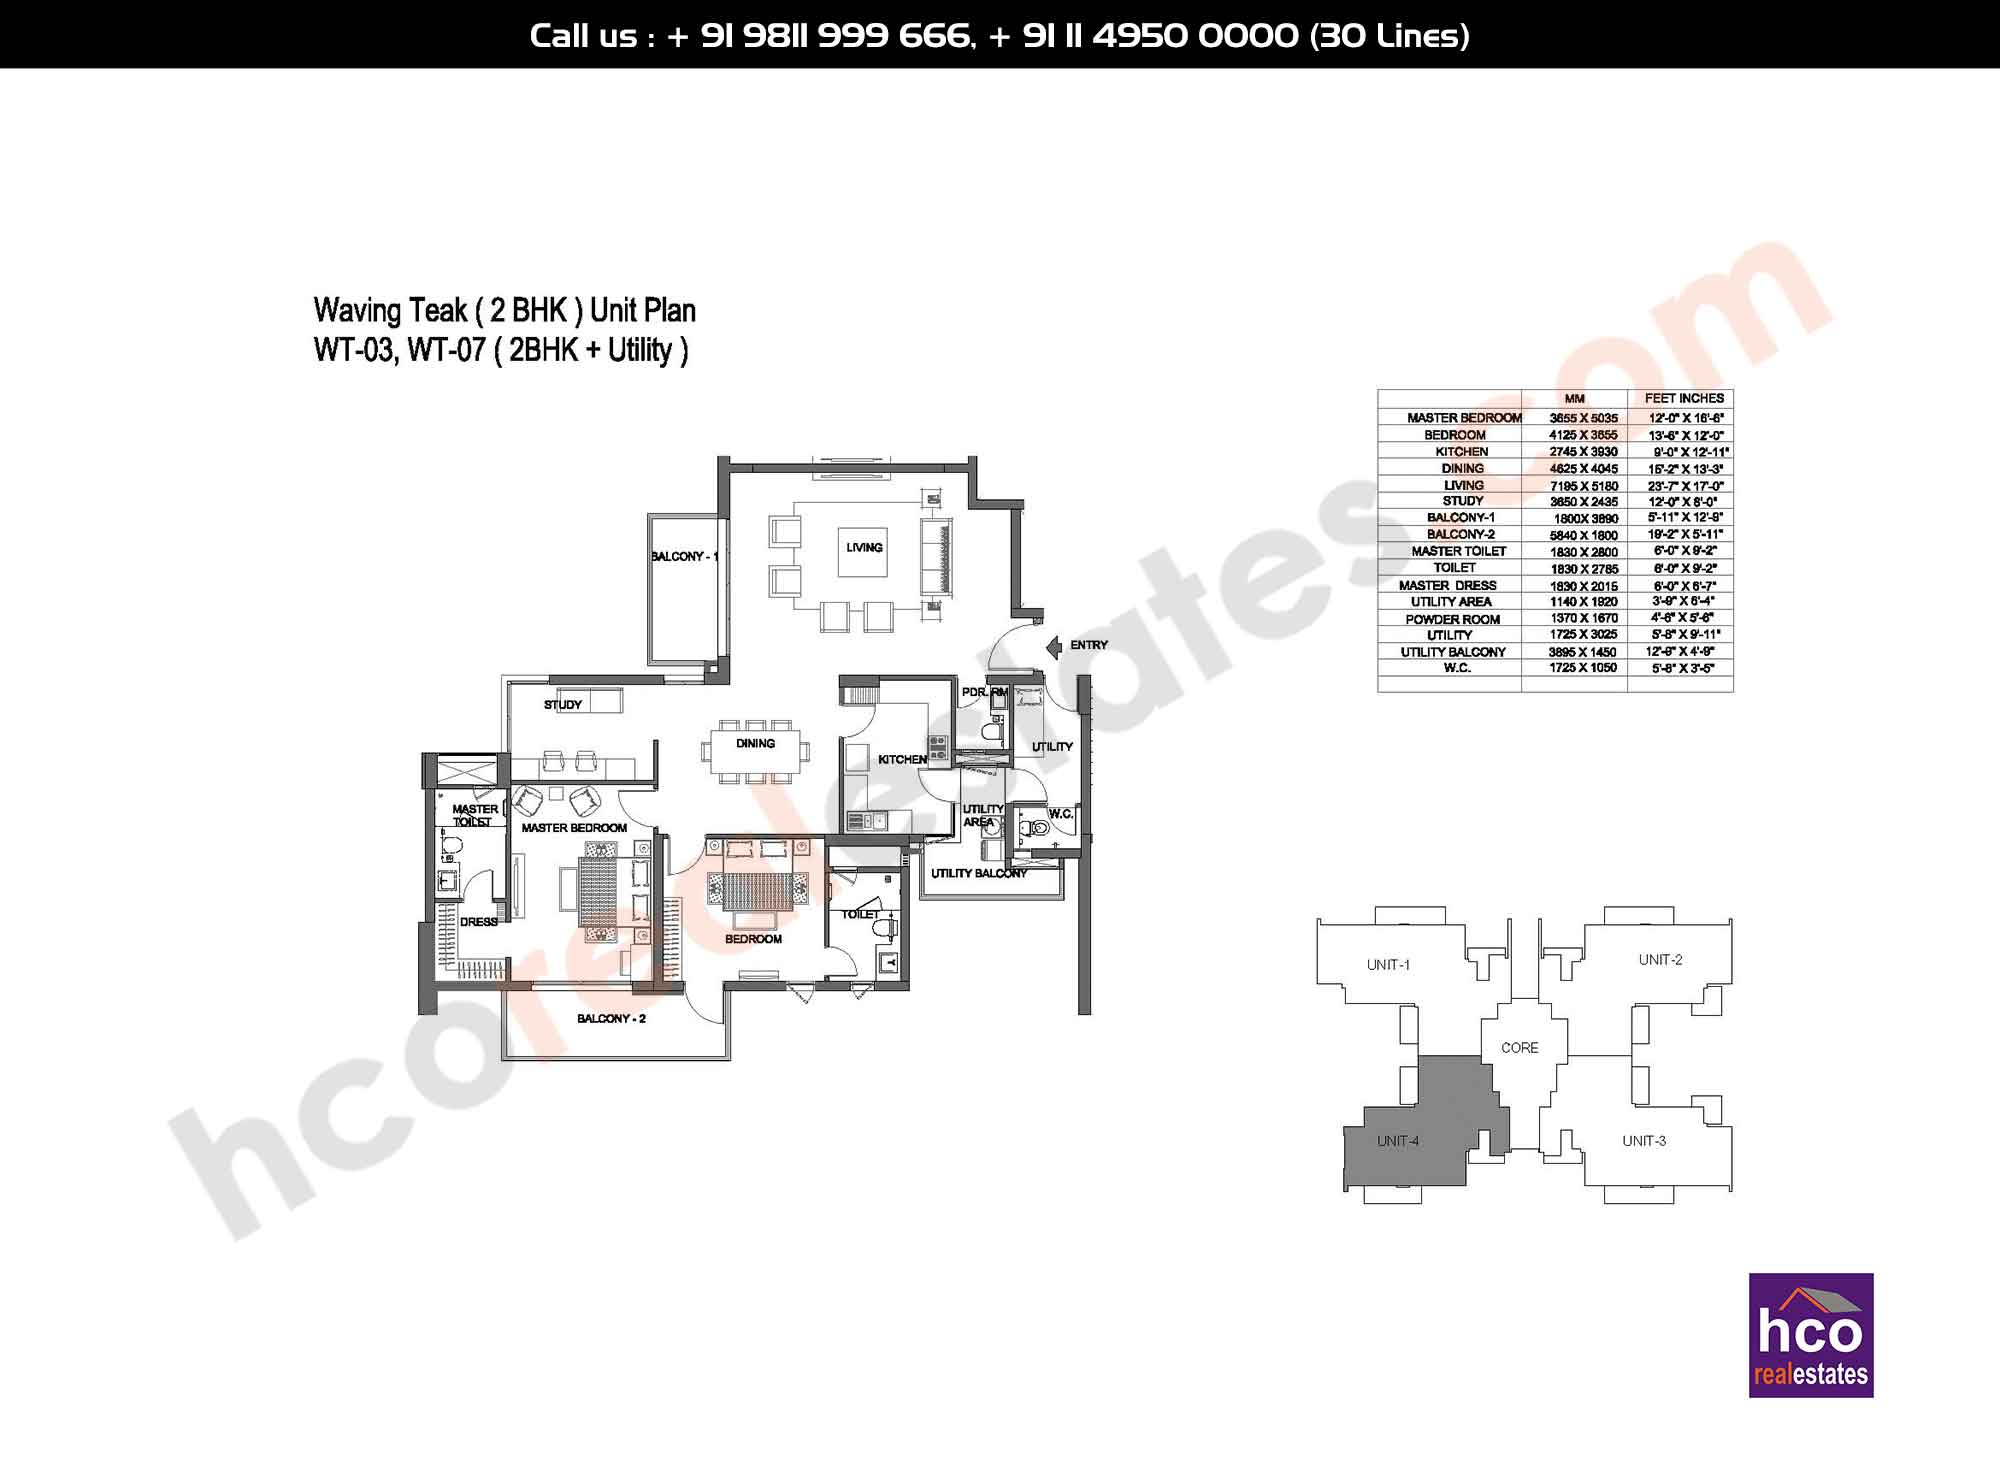 2 BHK + Utility: 2441 Sq. Ft.